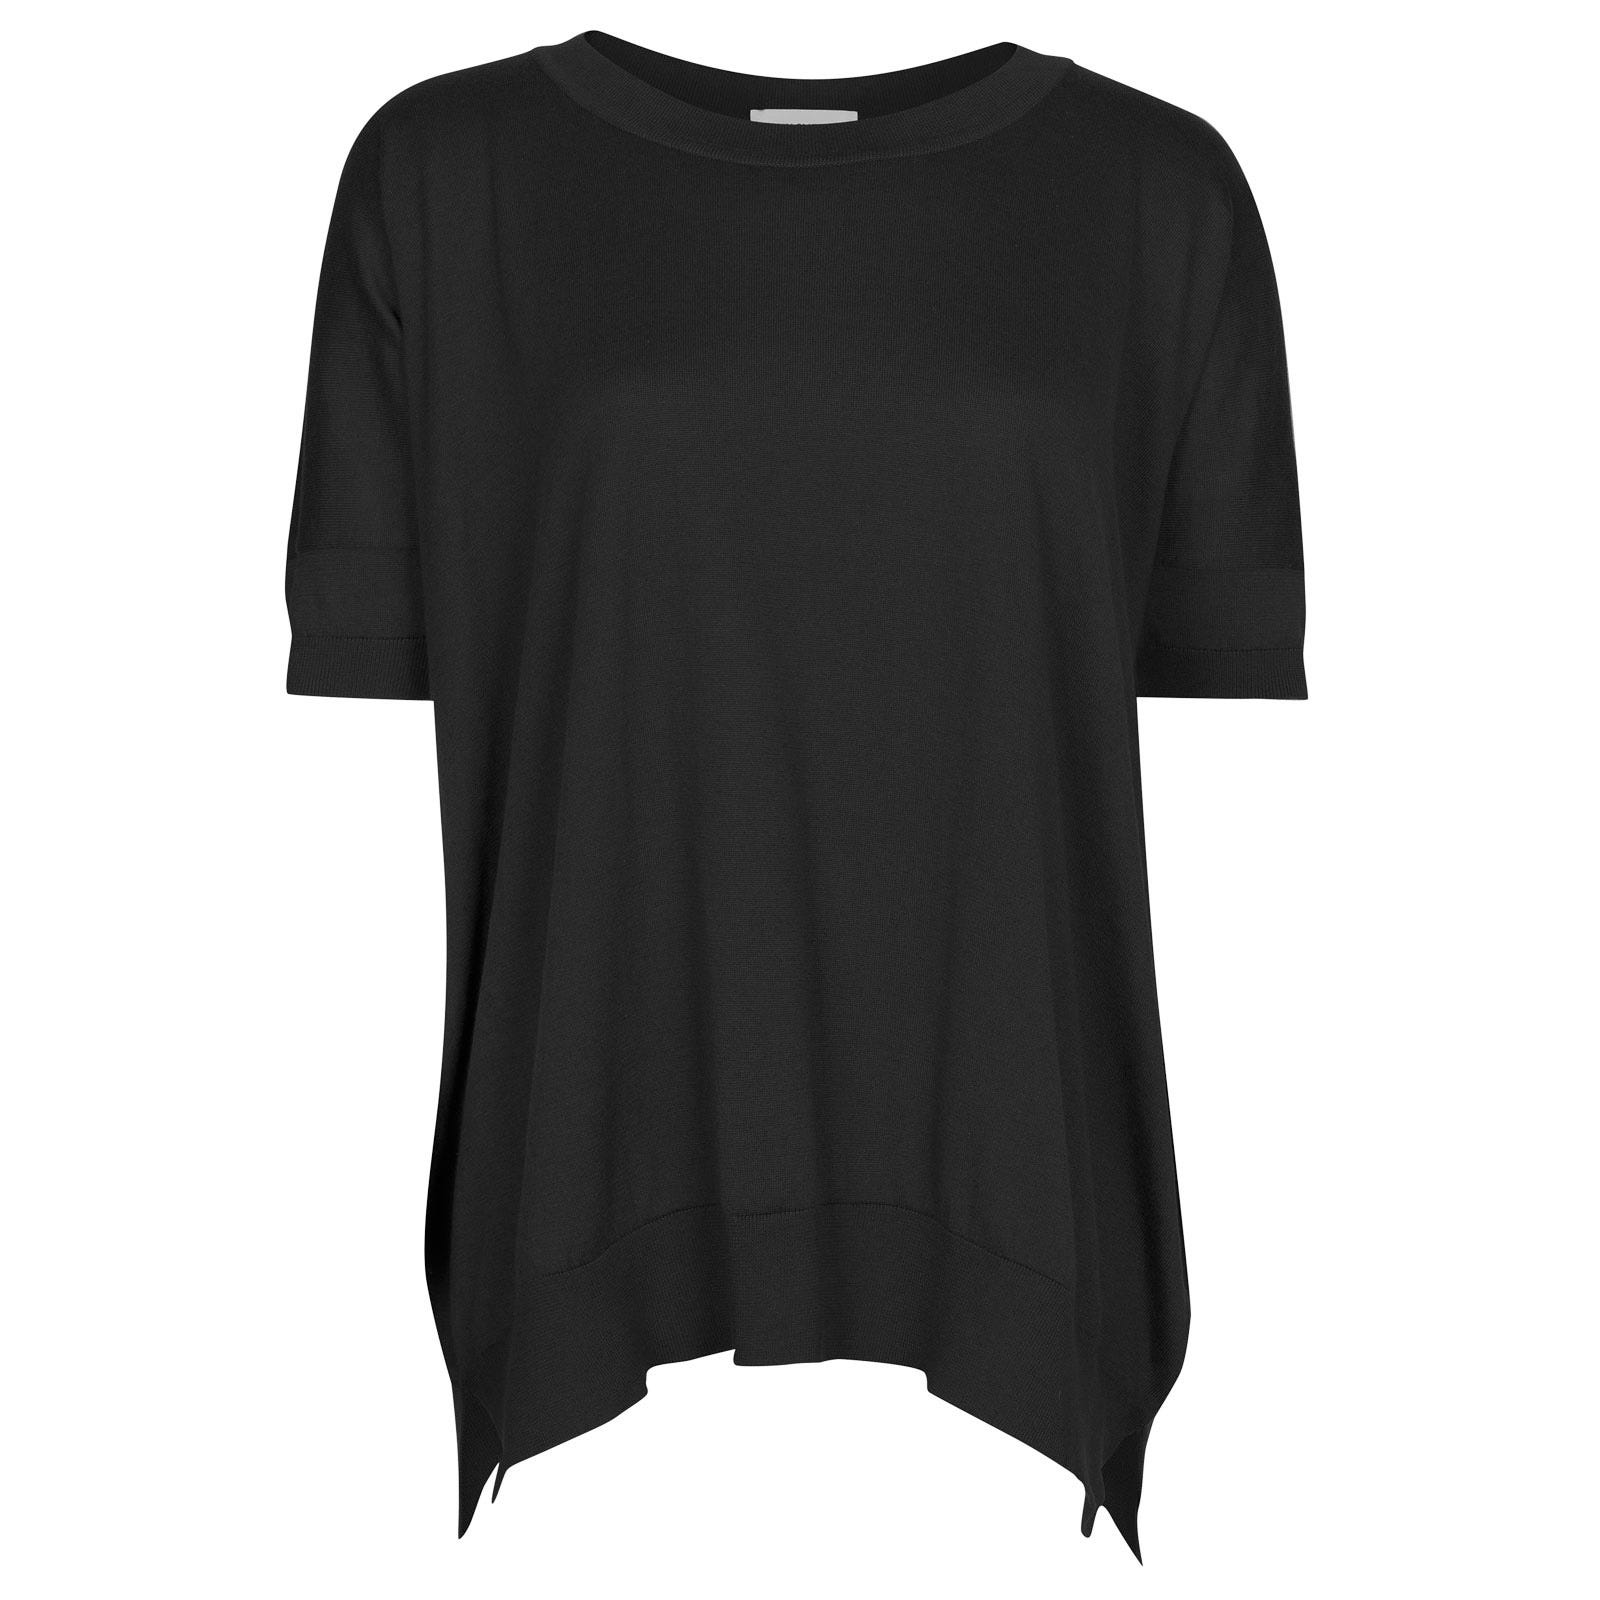 John Smedley Bryony in Black Sweater-XLG